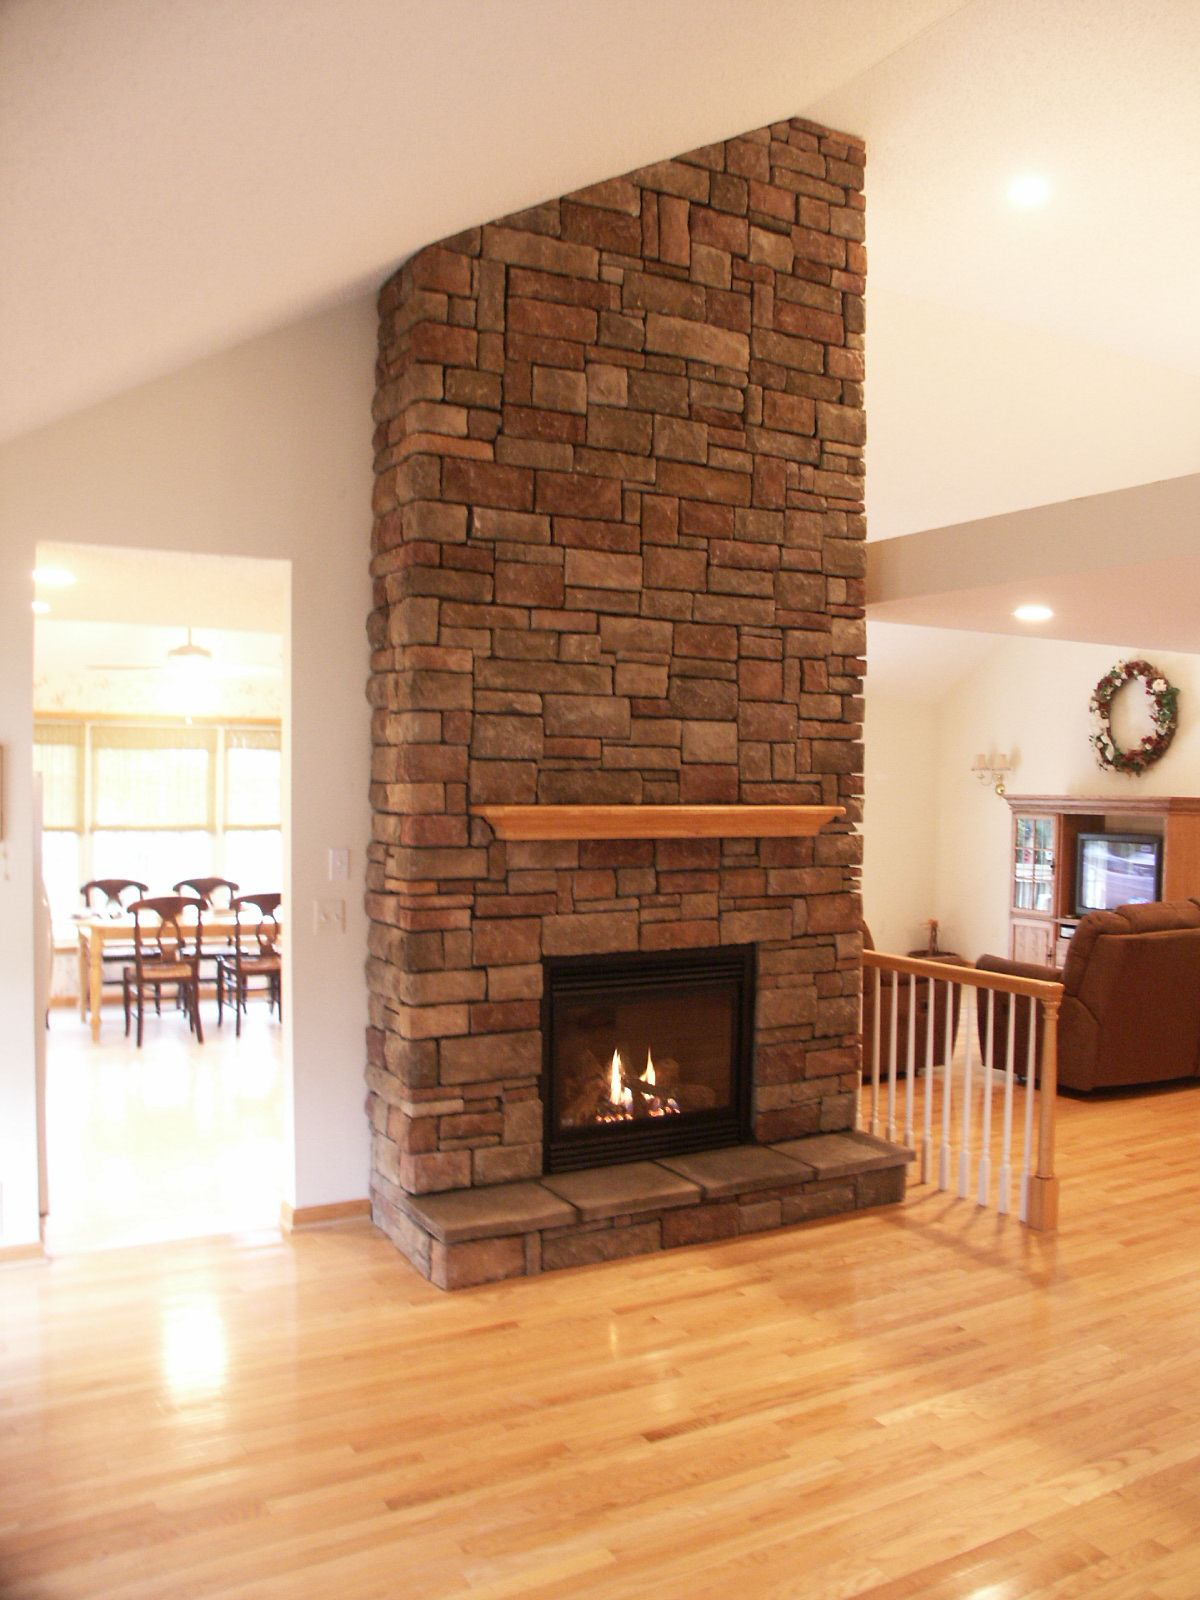 Interior design a new gas beautiful fireplaces stone for Interior fireplaces designs